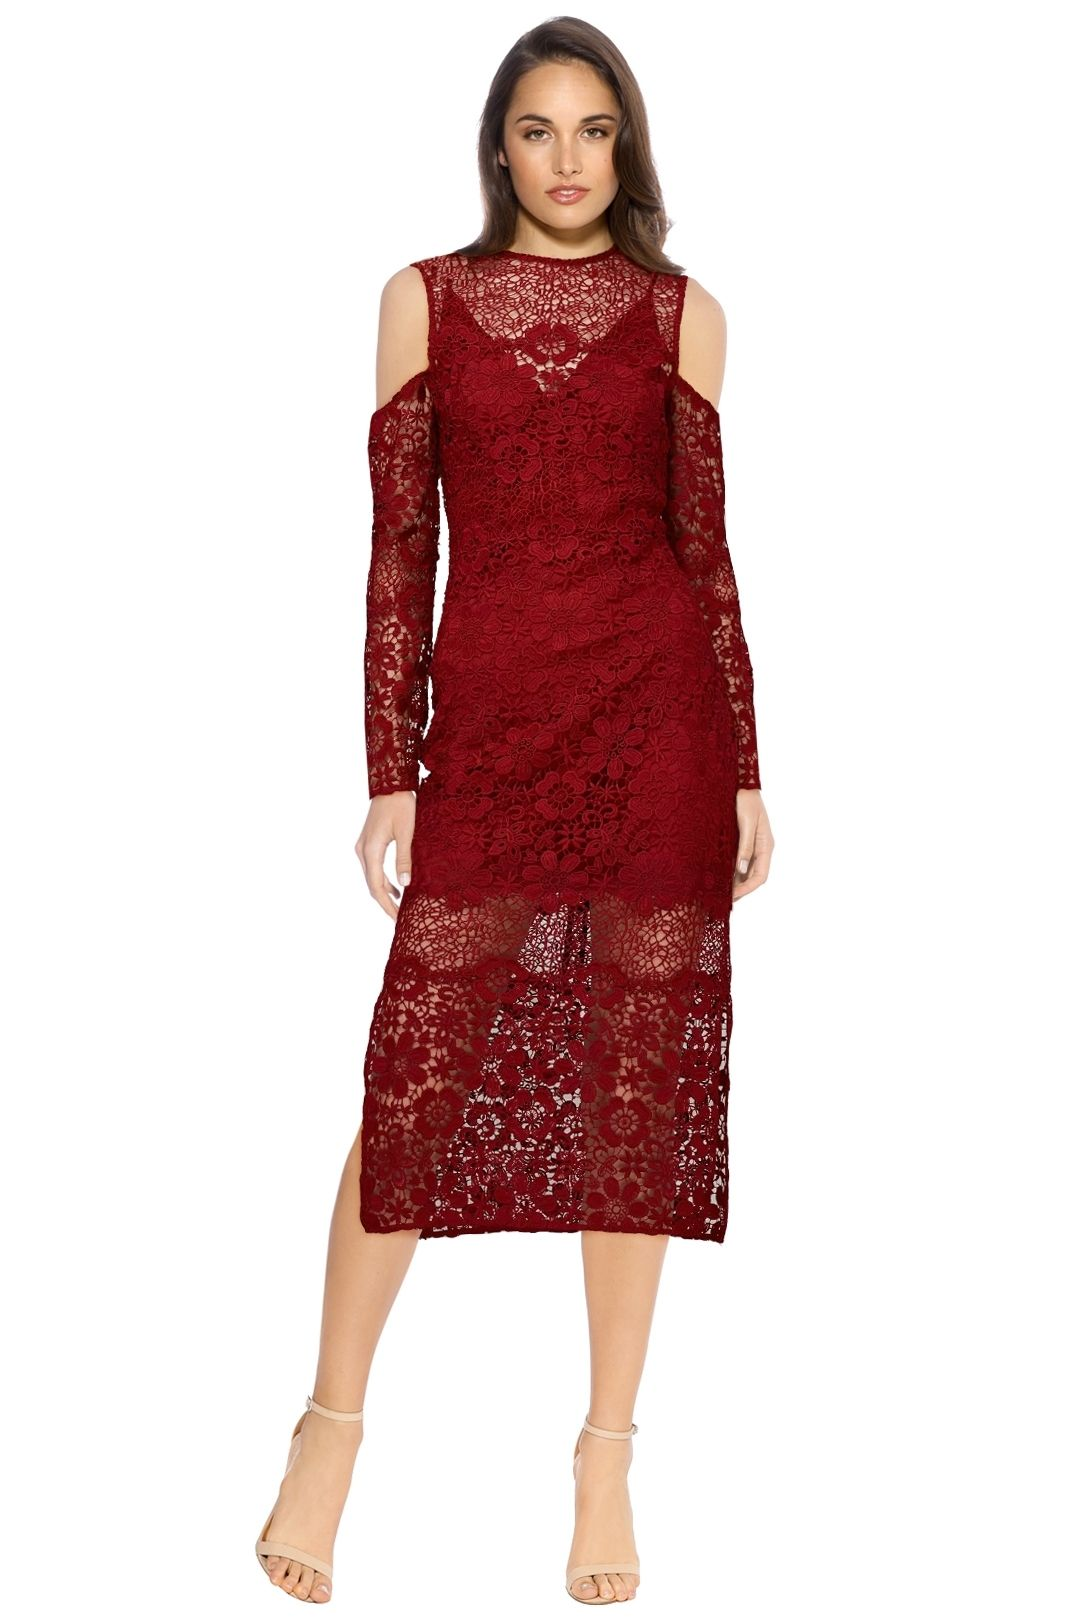 Keepsake The Label - Reach Out LS Midi Dress - Plum - Wine Red - Front